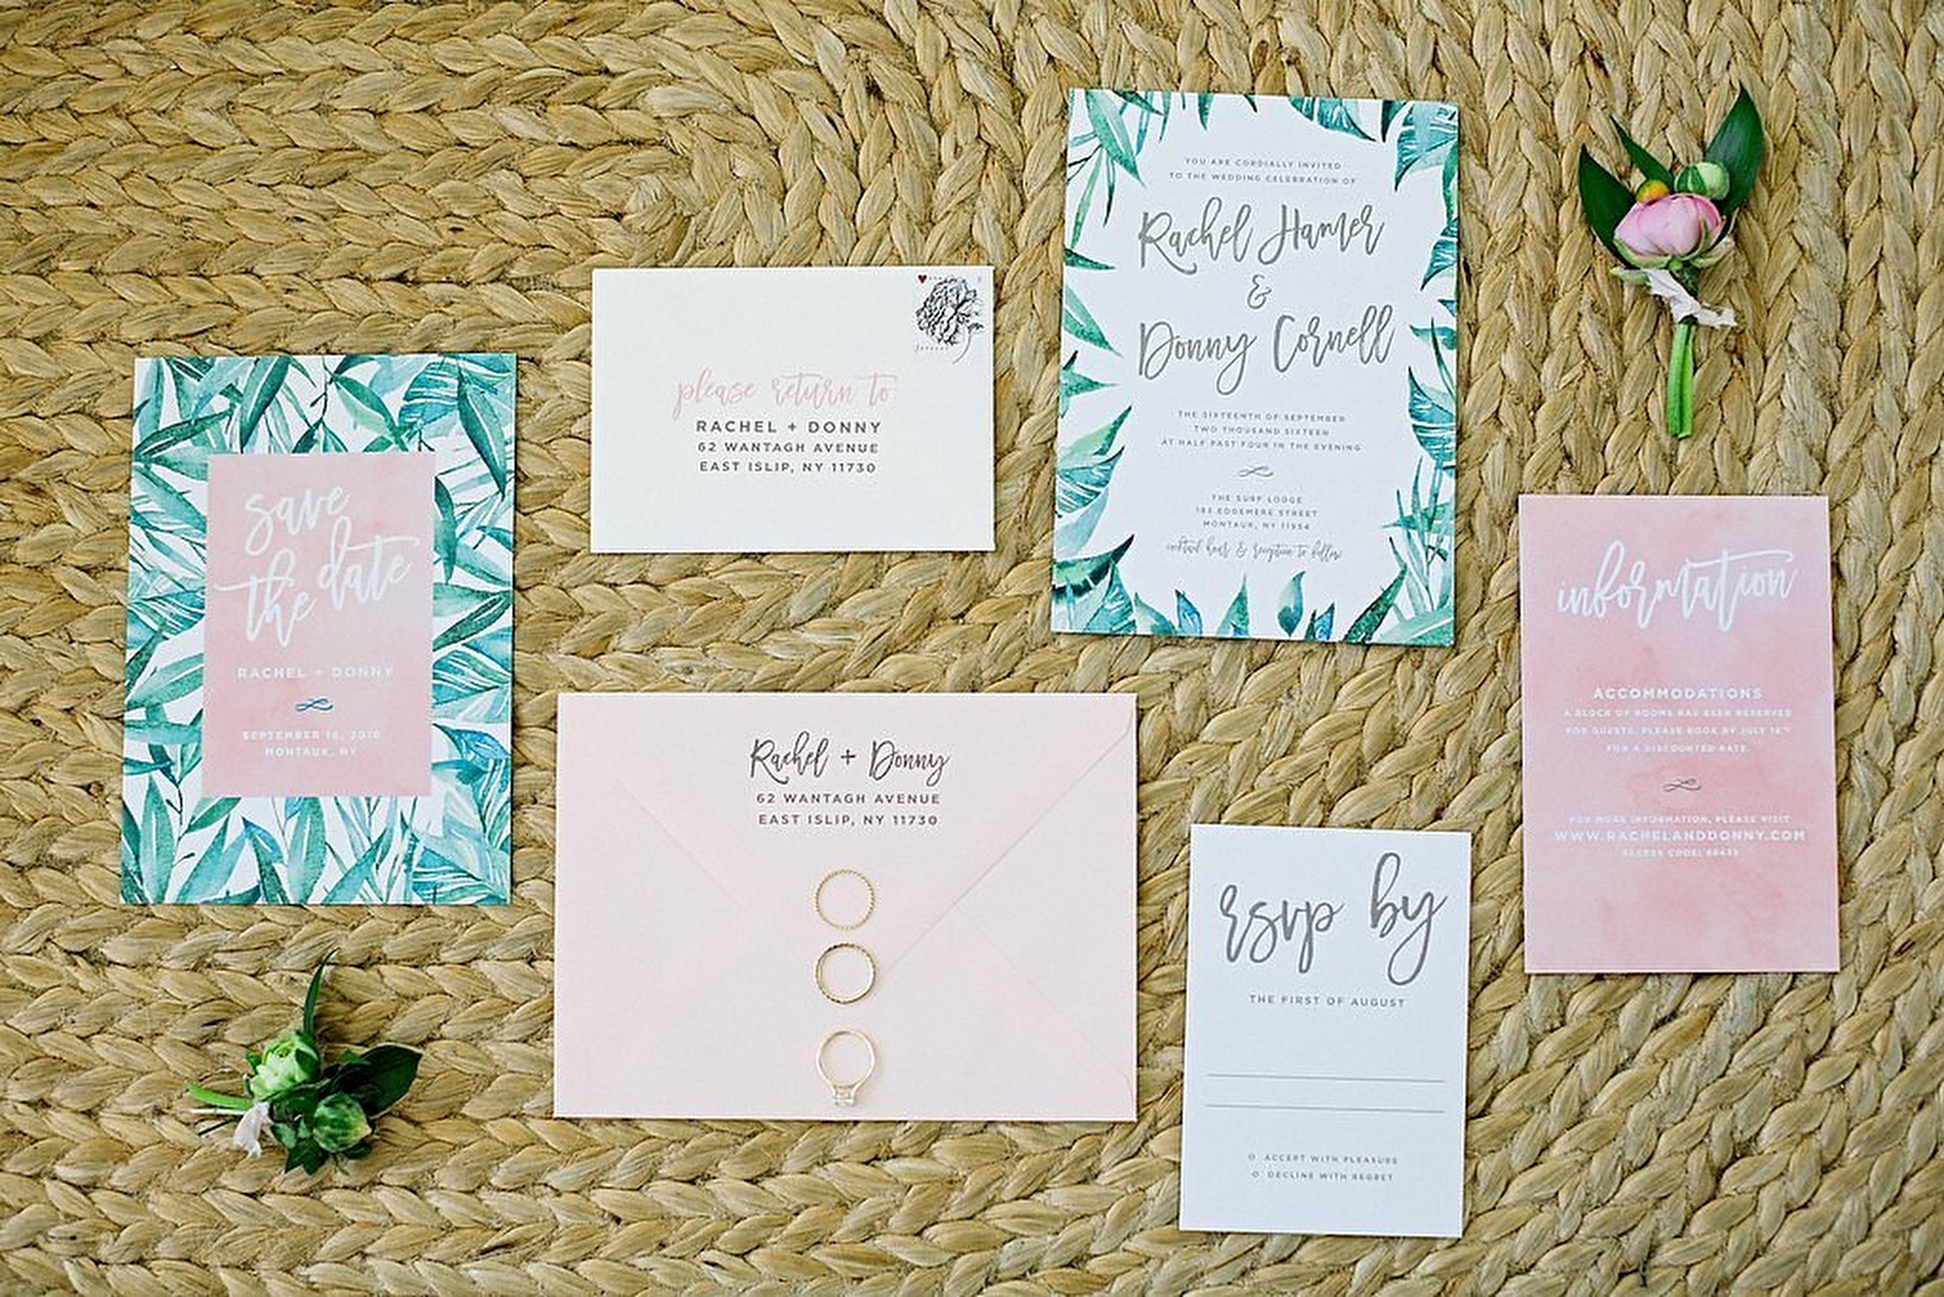 THE SURF LODGE WEDDING_BETSI EWING STUDIO_004.JPG